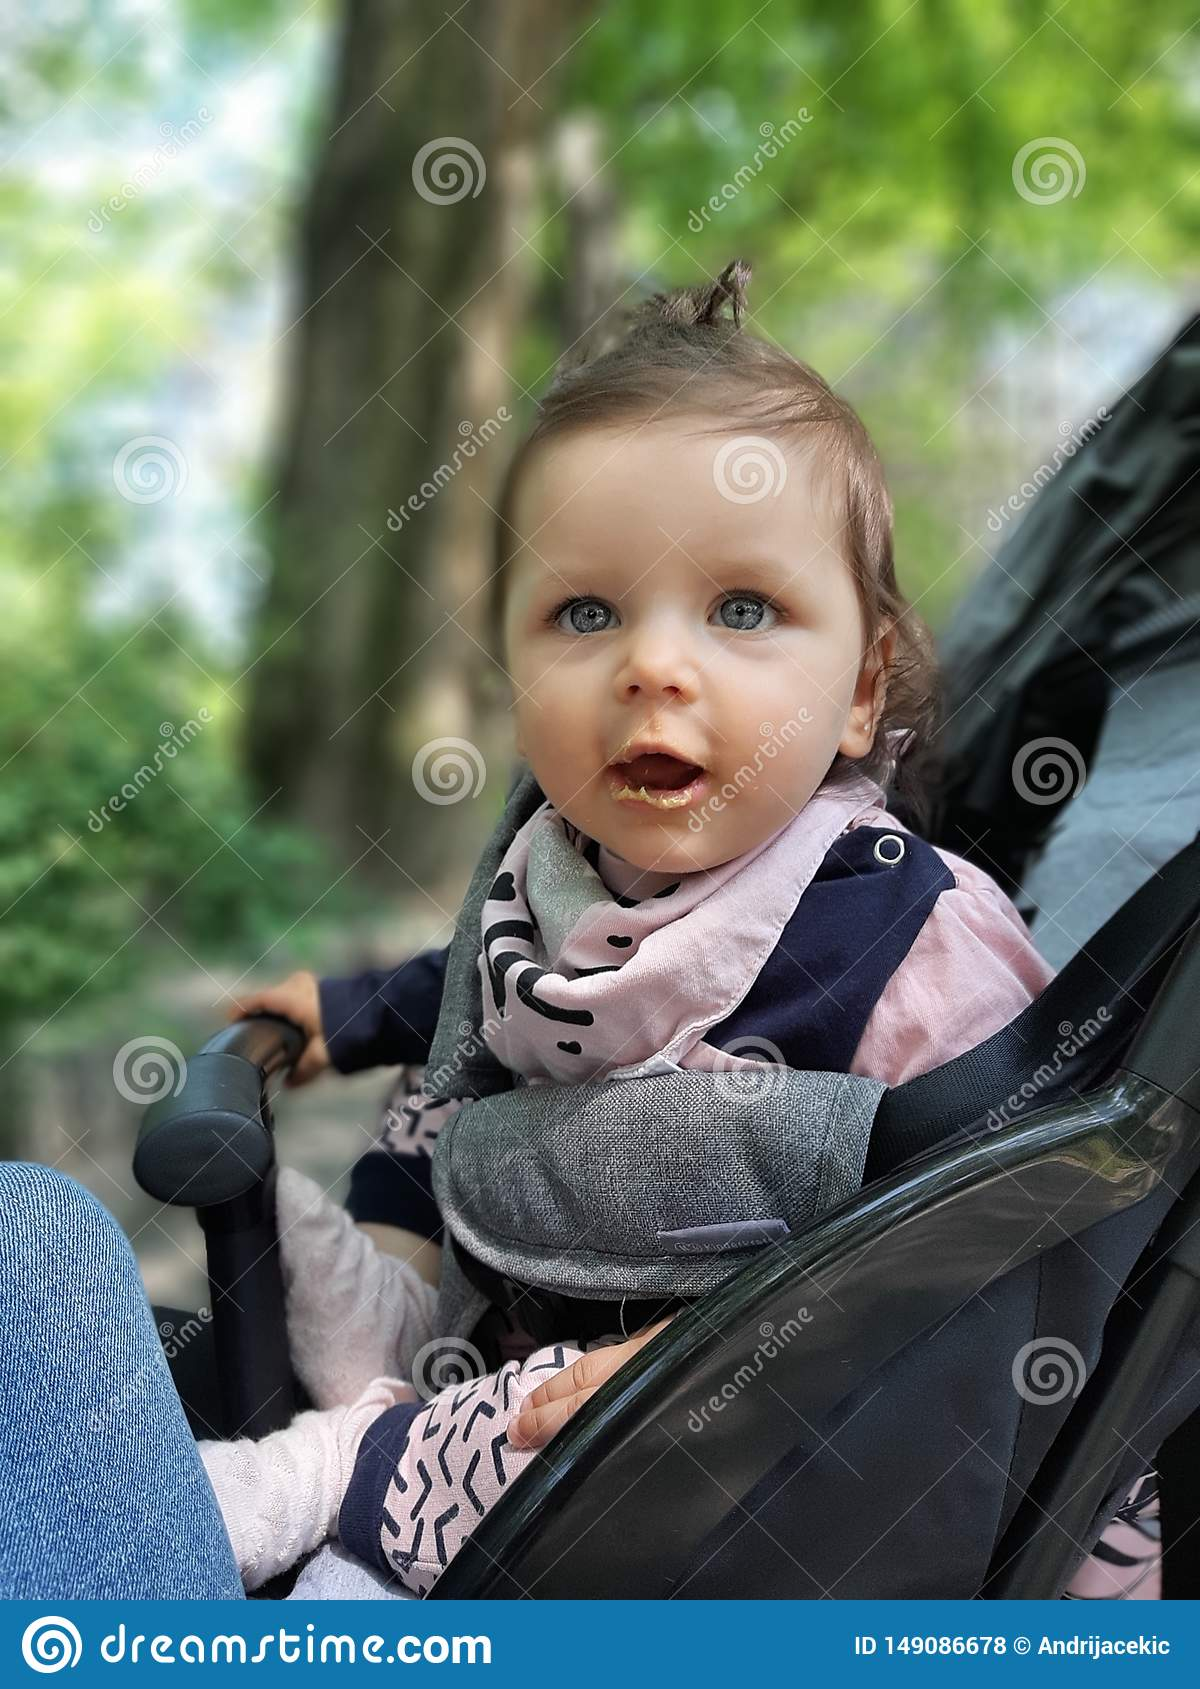 9 months old baby girl in the park eating